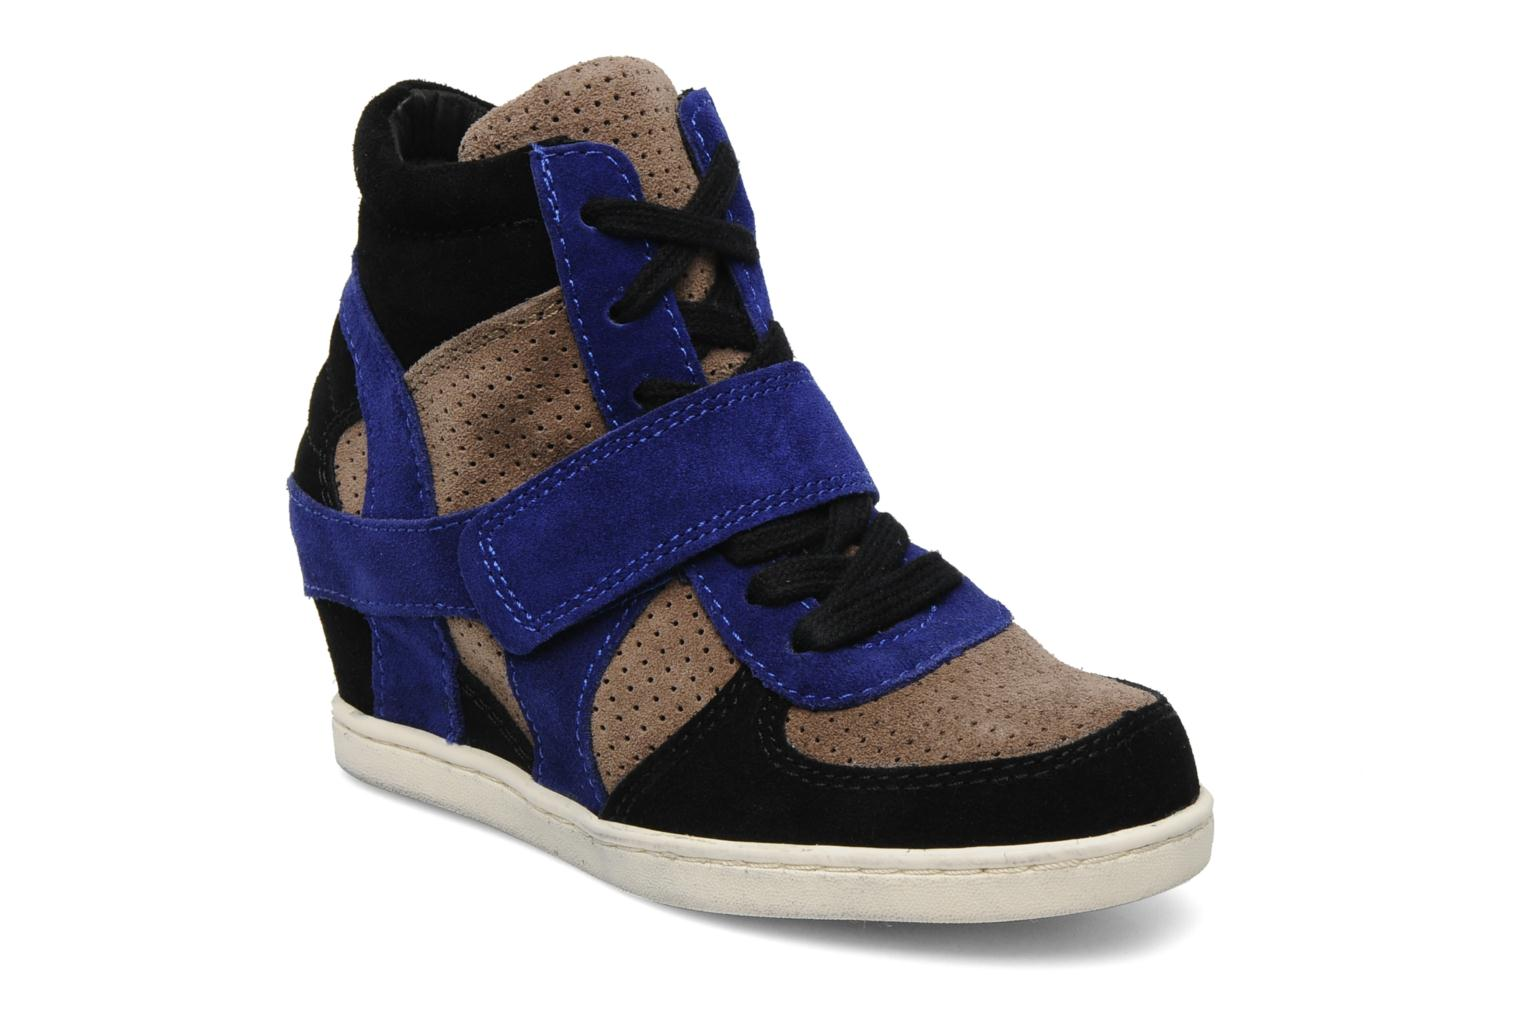 Sneakers babe multi by Ash